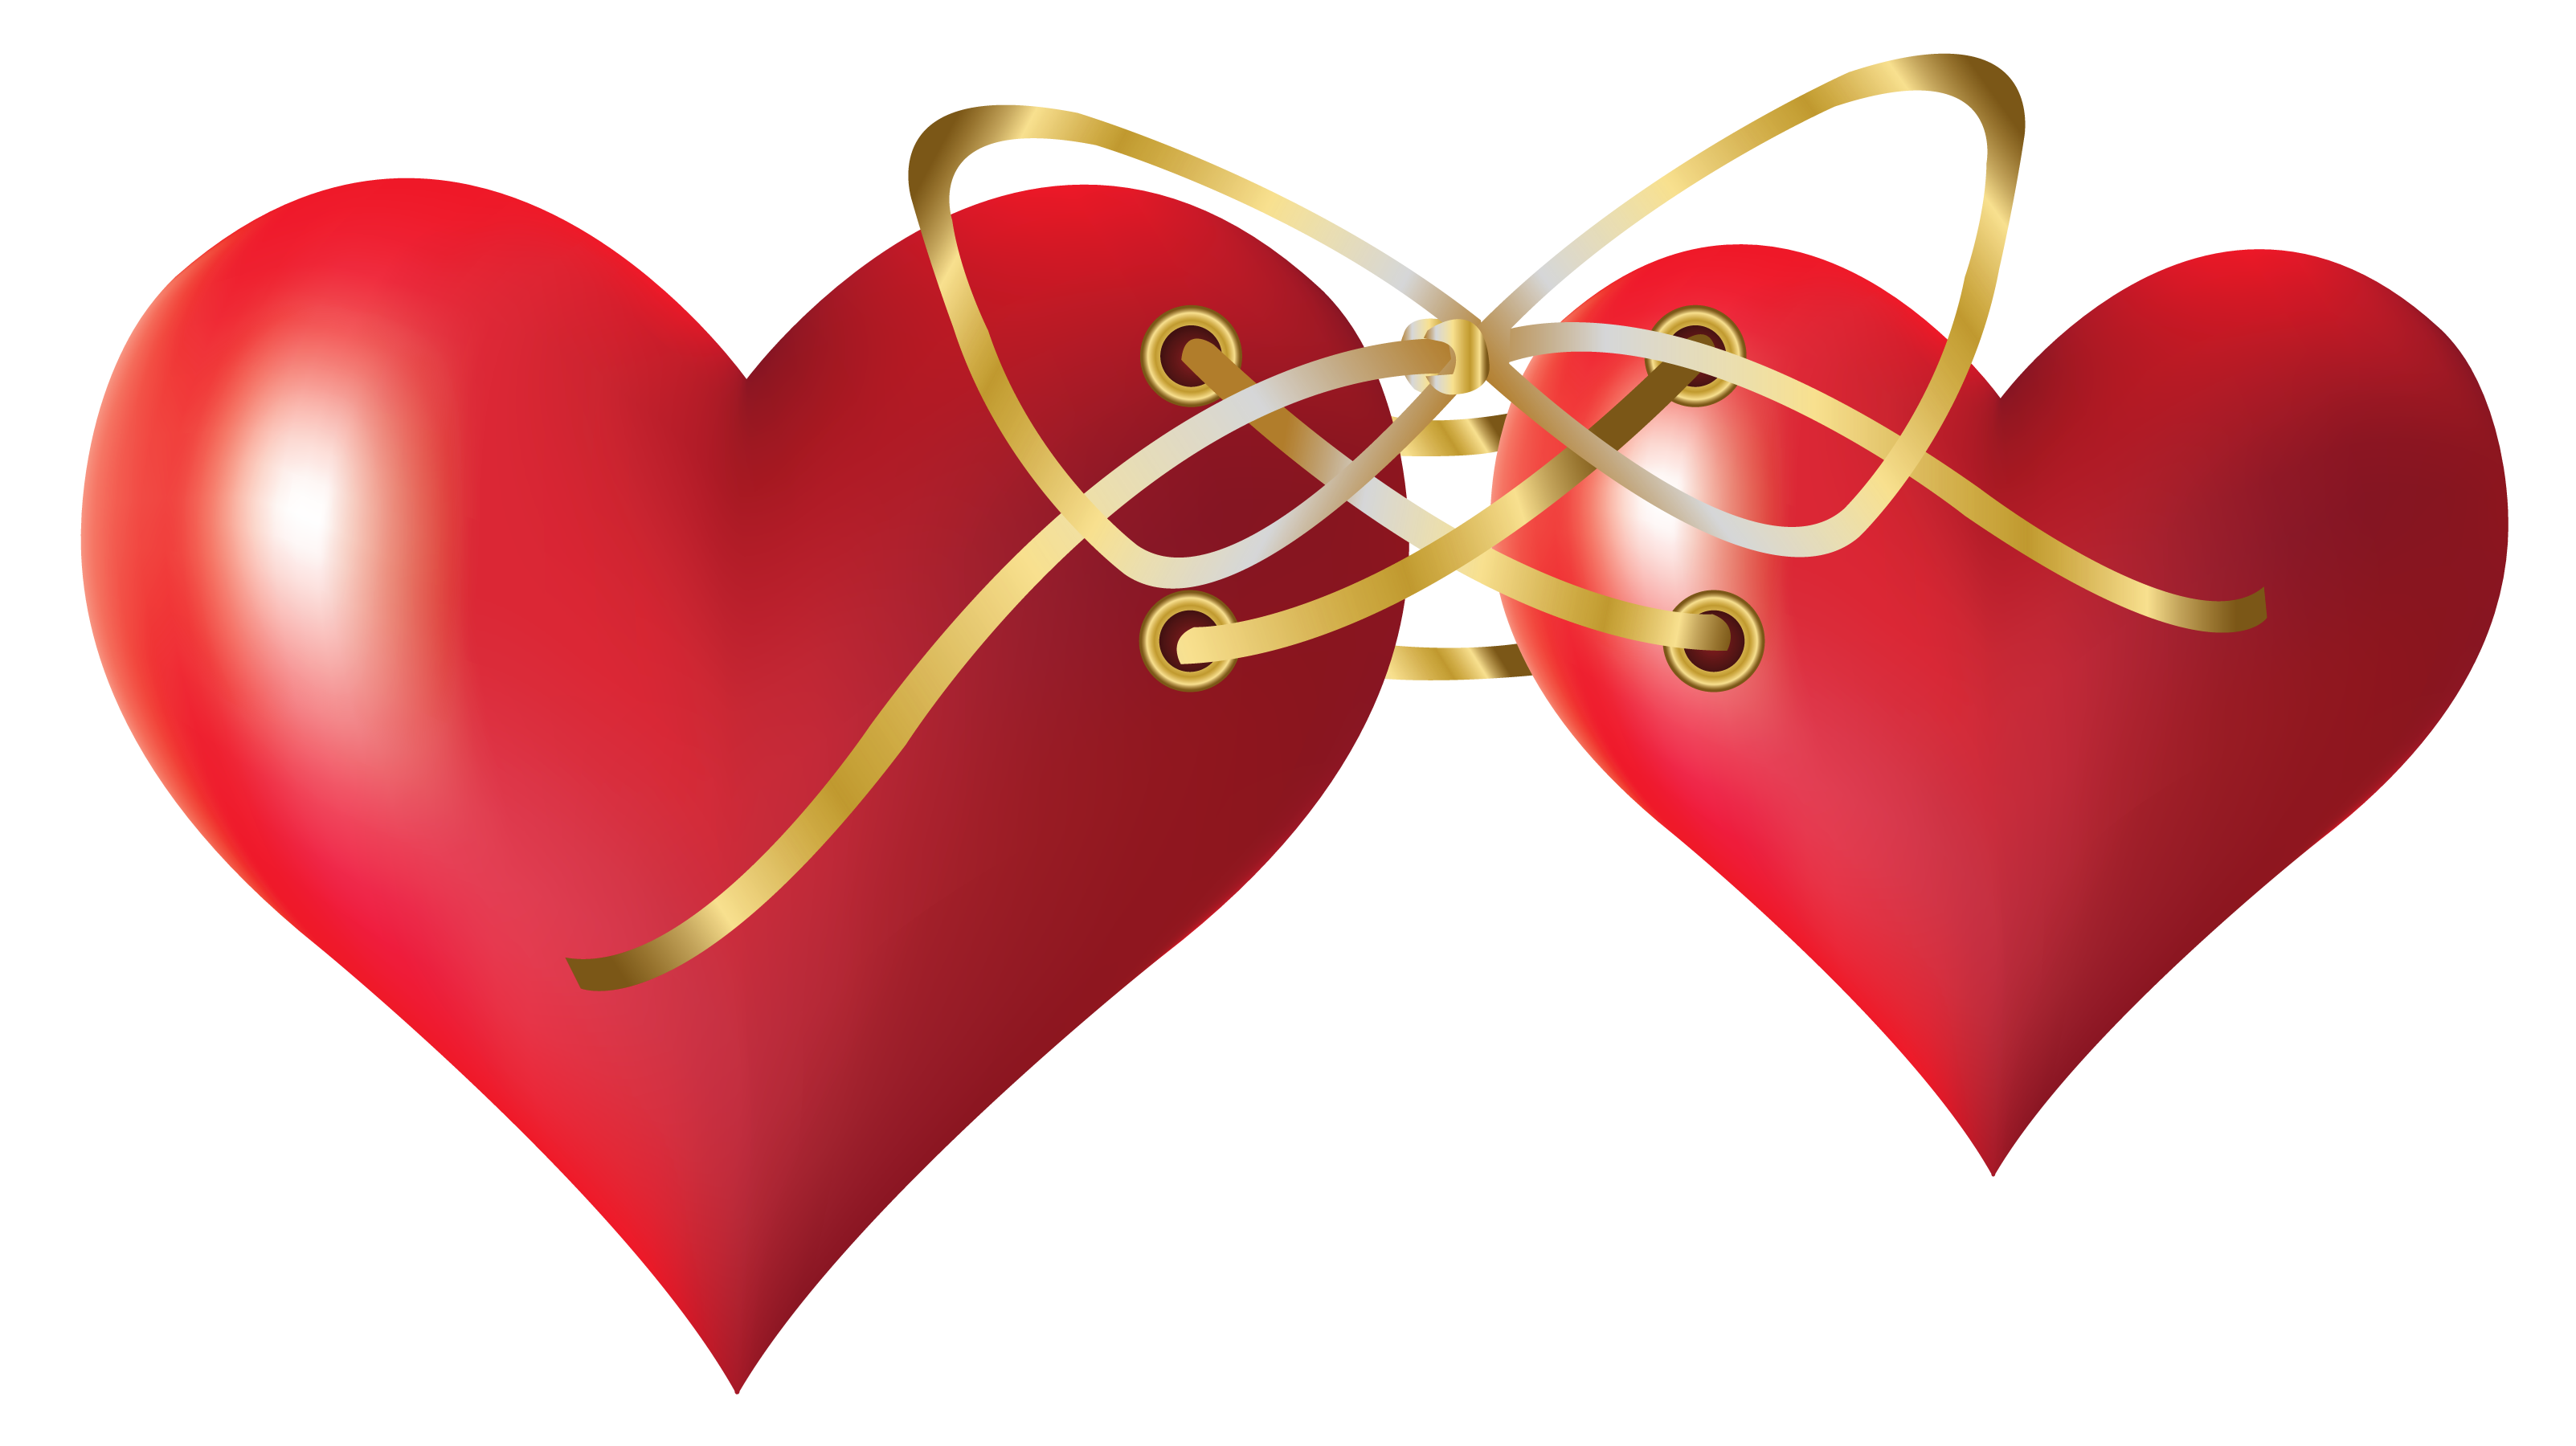 Two hearts png. Tied clipart gallery yopriceville